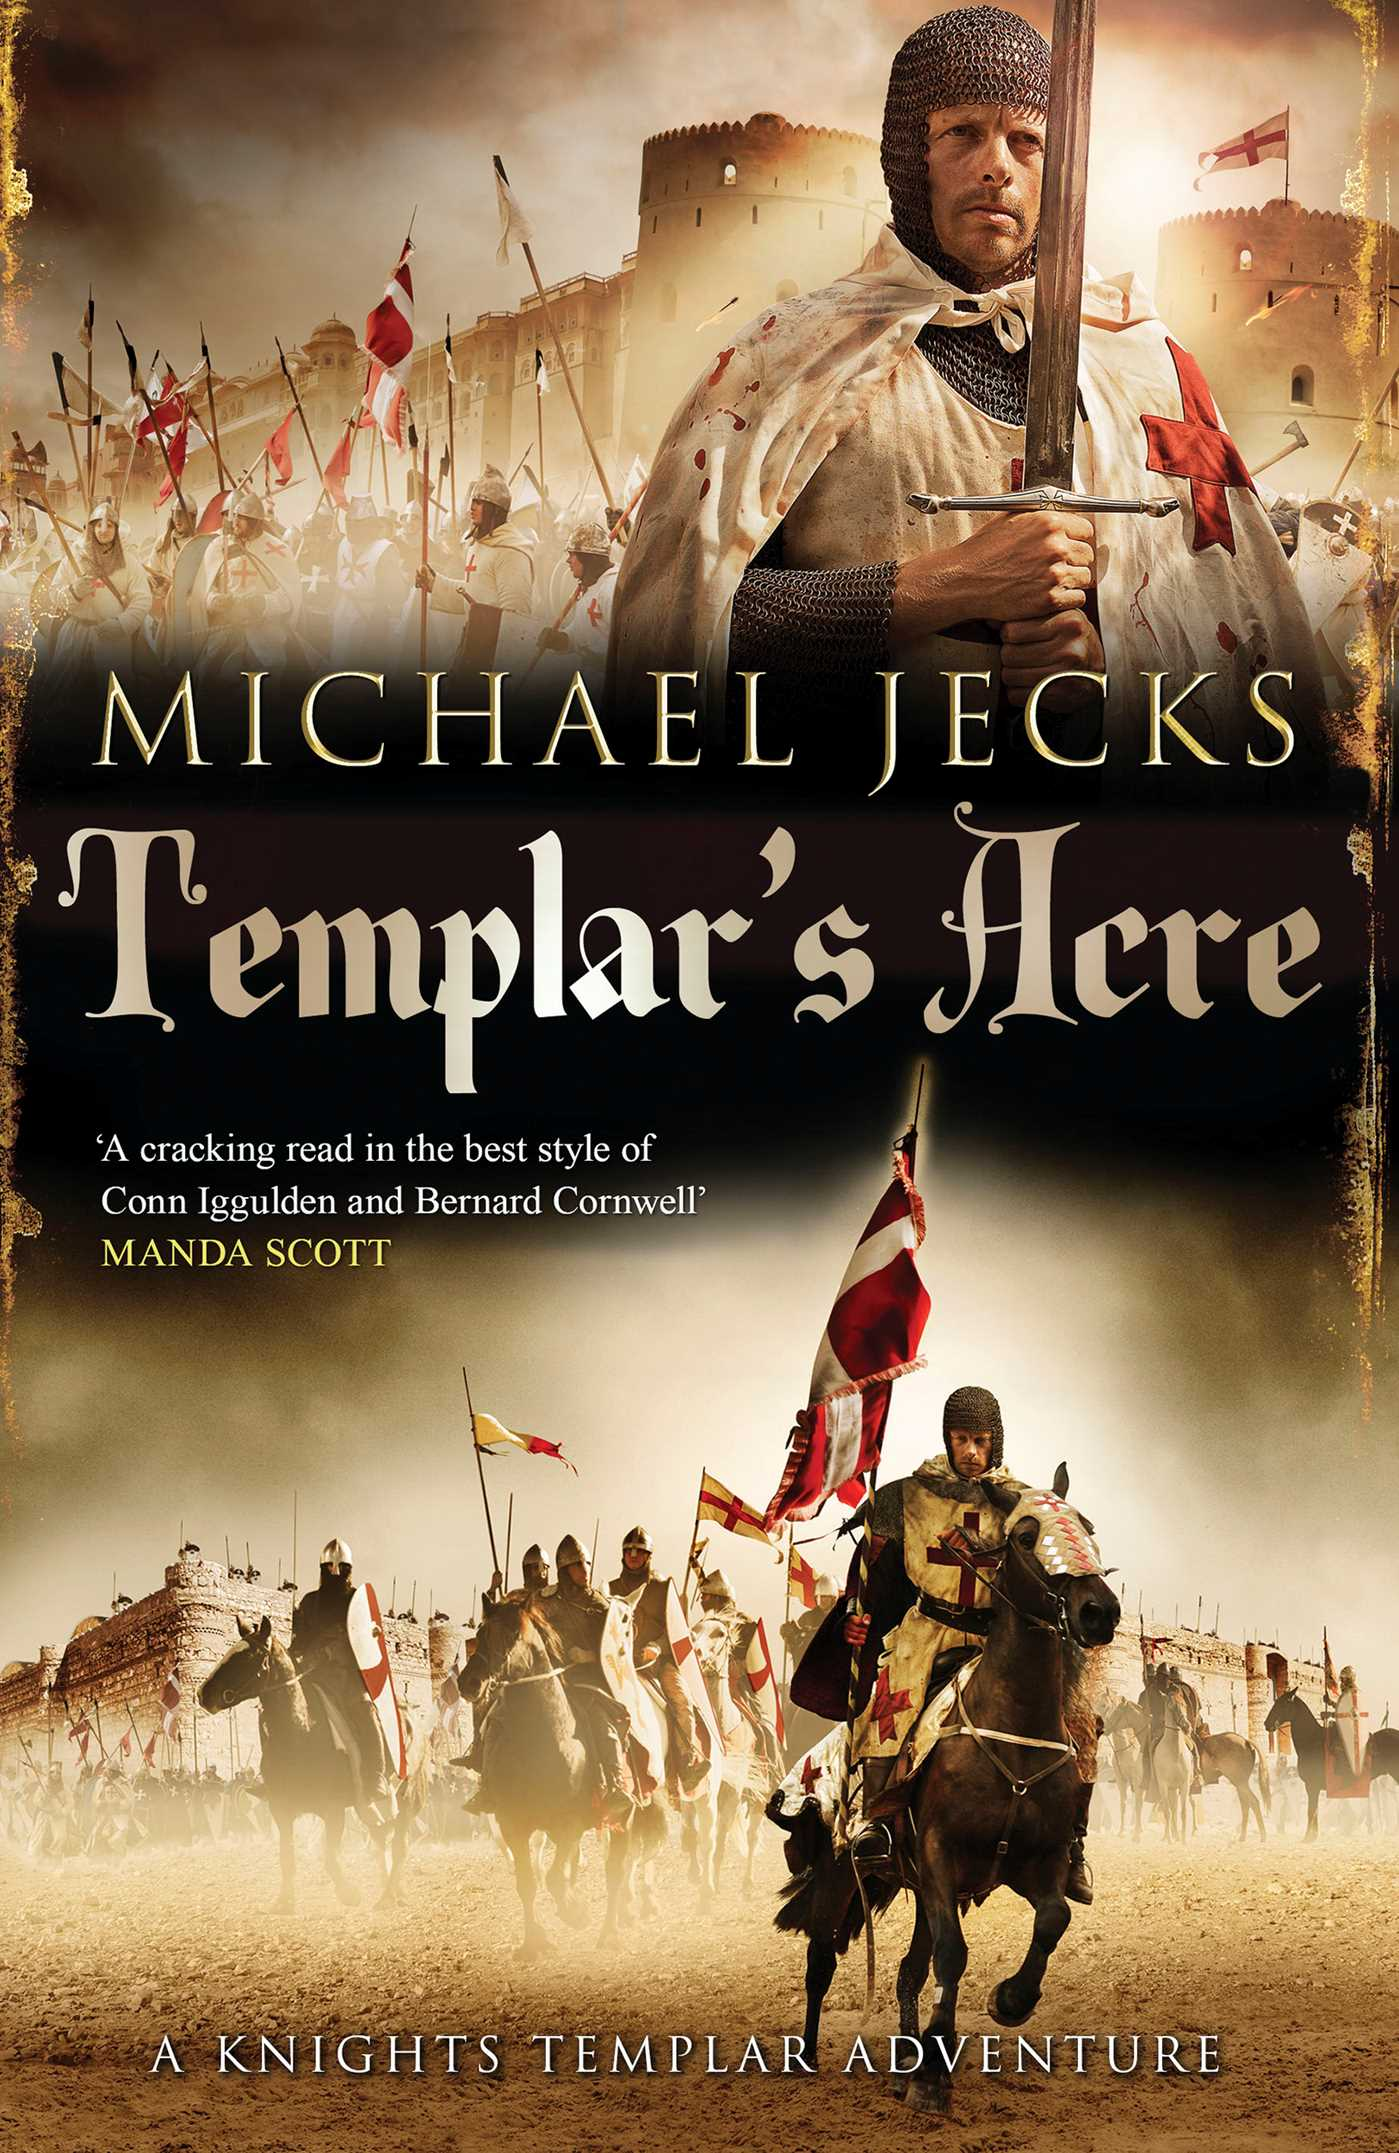 Templar's Acre | Book by Michael Jecks | Official Publisher